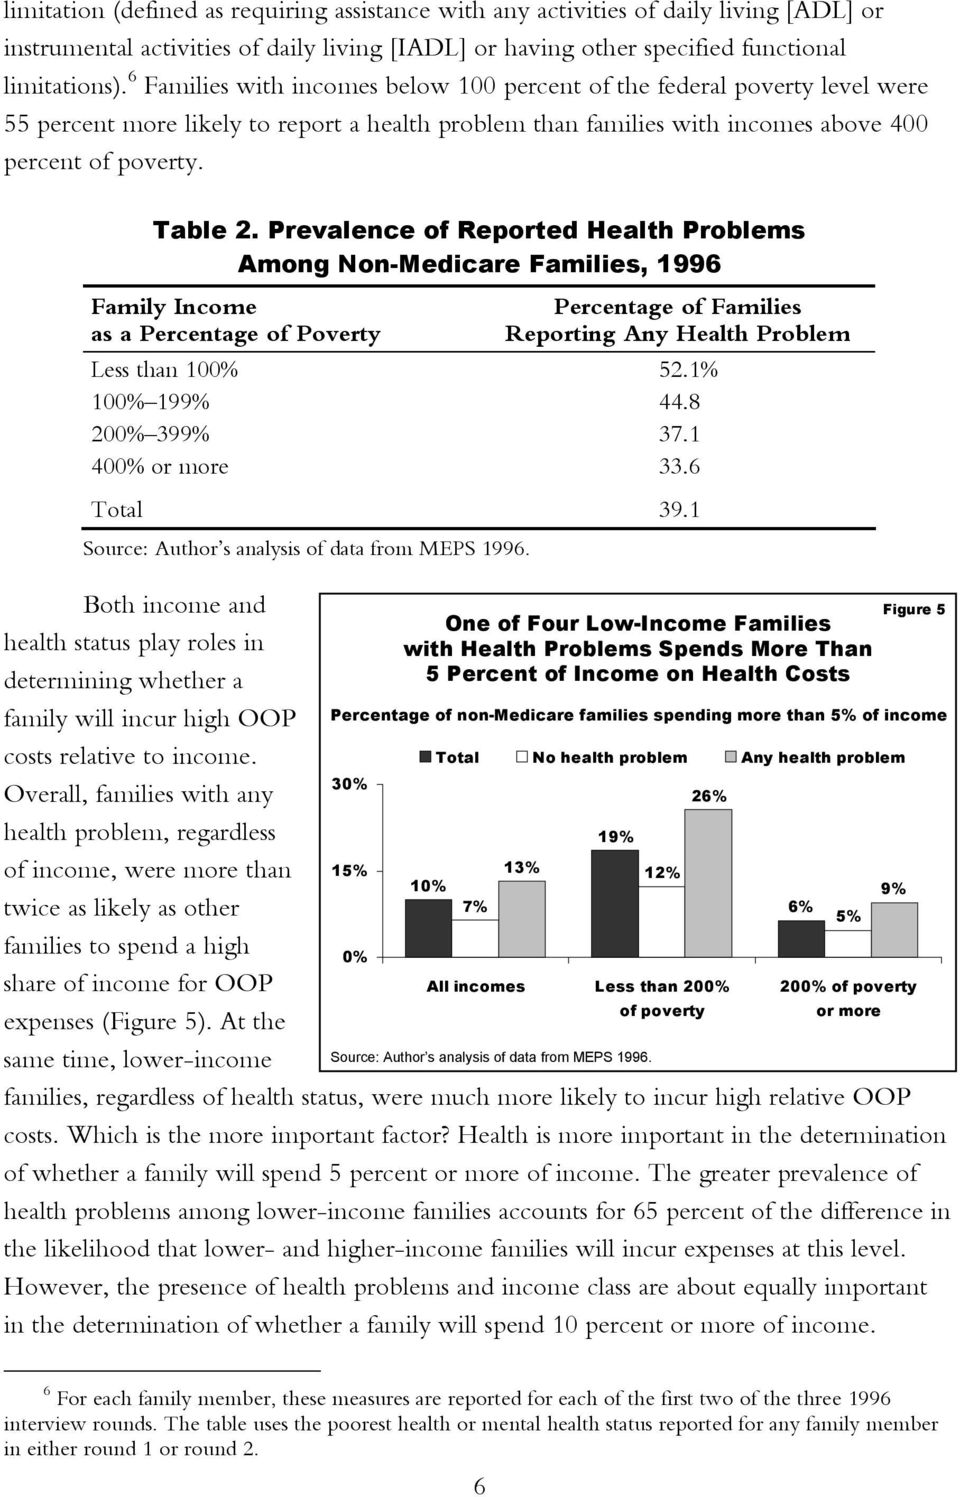 Prevalence of Reported Health Problems Among Non-Medicare Families, 1996 Family Income as a Percentage of Poverty One of Four Low-Income Families with Health Problems Spends More Than 5 Percent of